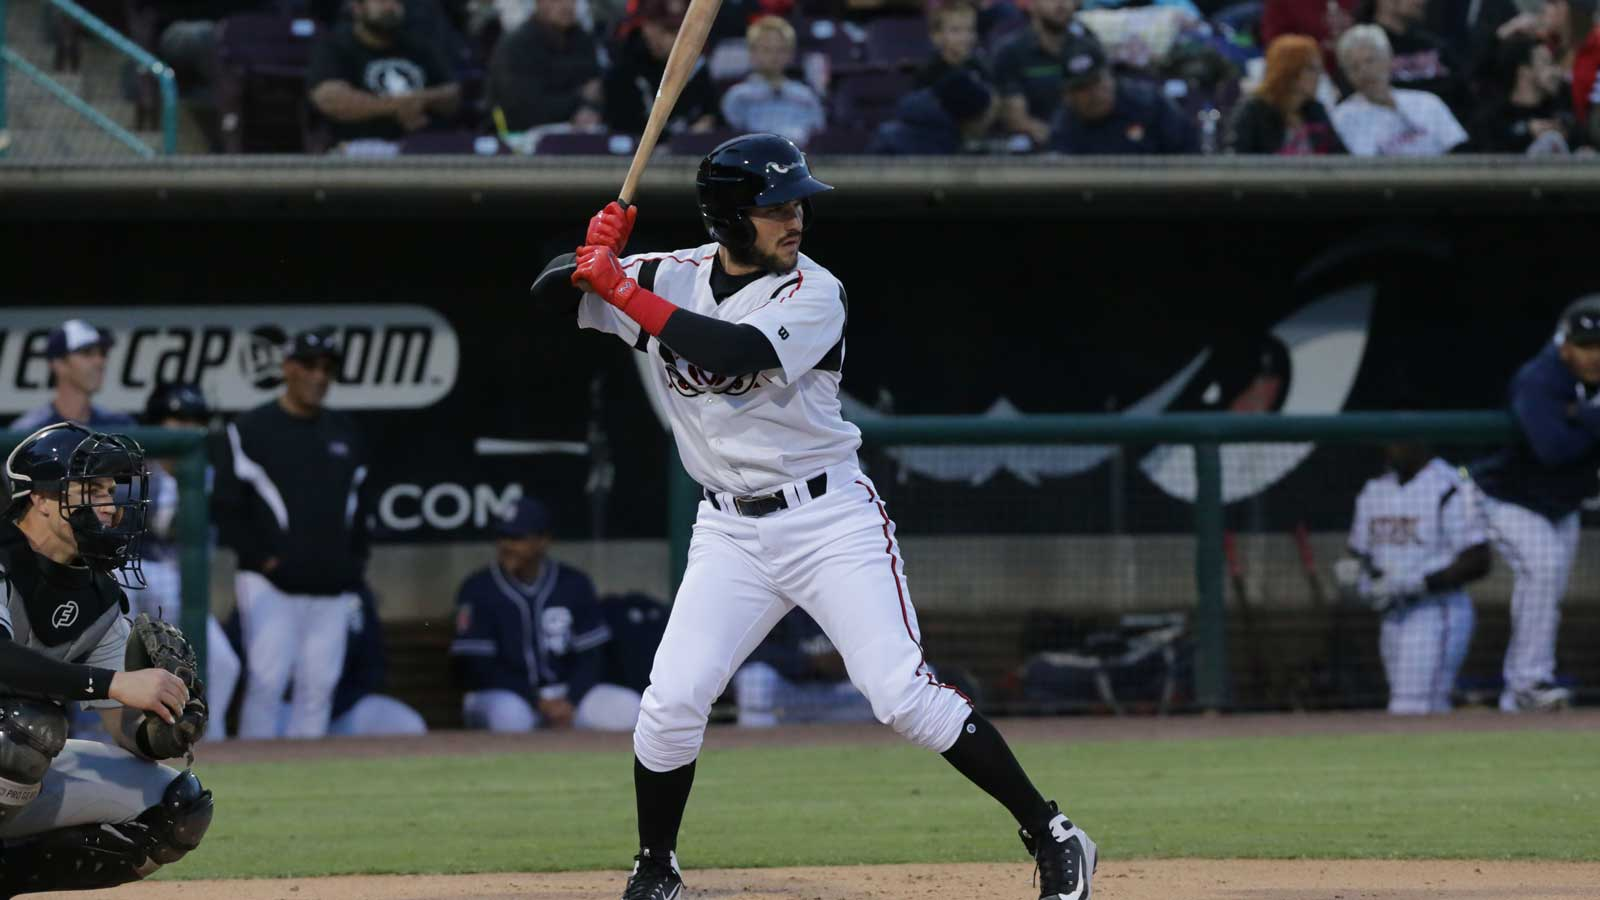 MadFriars' Feature: Catcher Luis Torrens looking to get back to the bigs